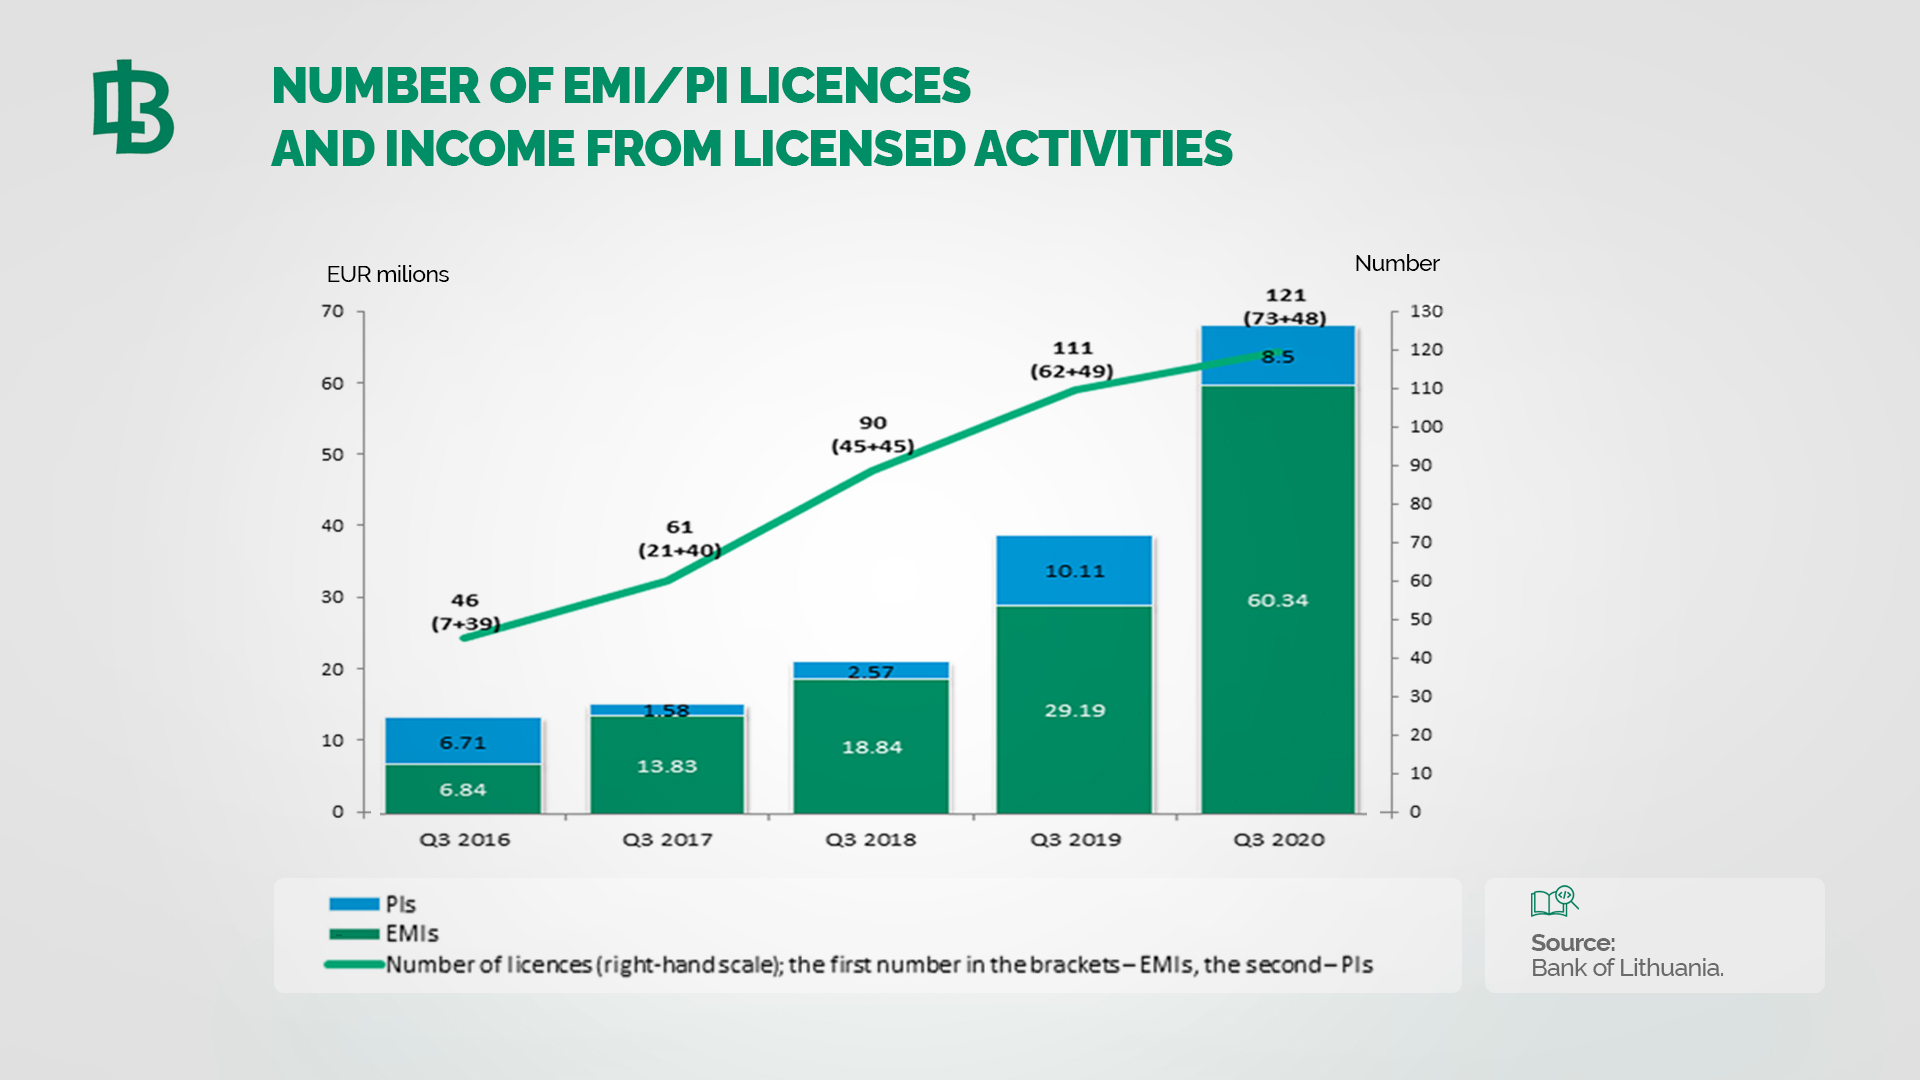 Electronic money and payment institutions both transaction amounts and income are rising